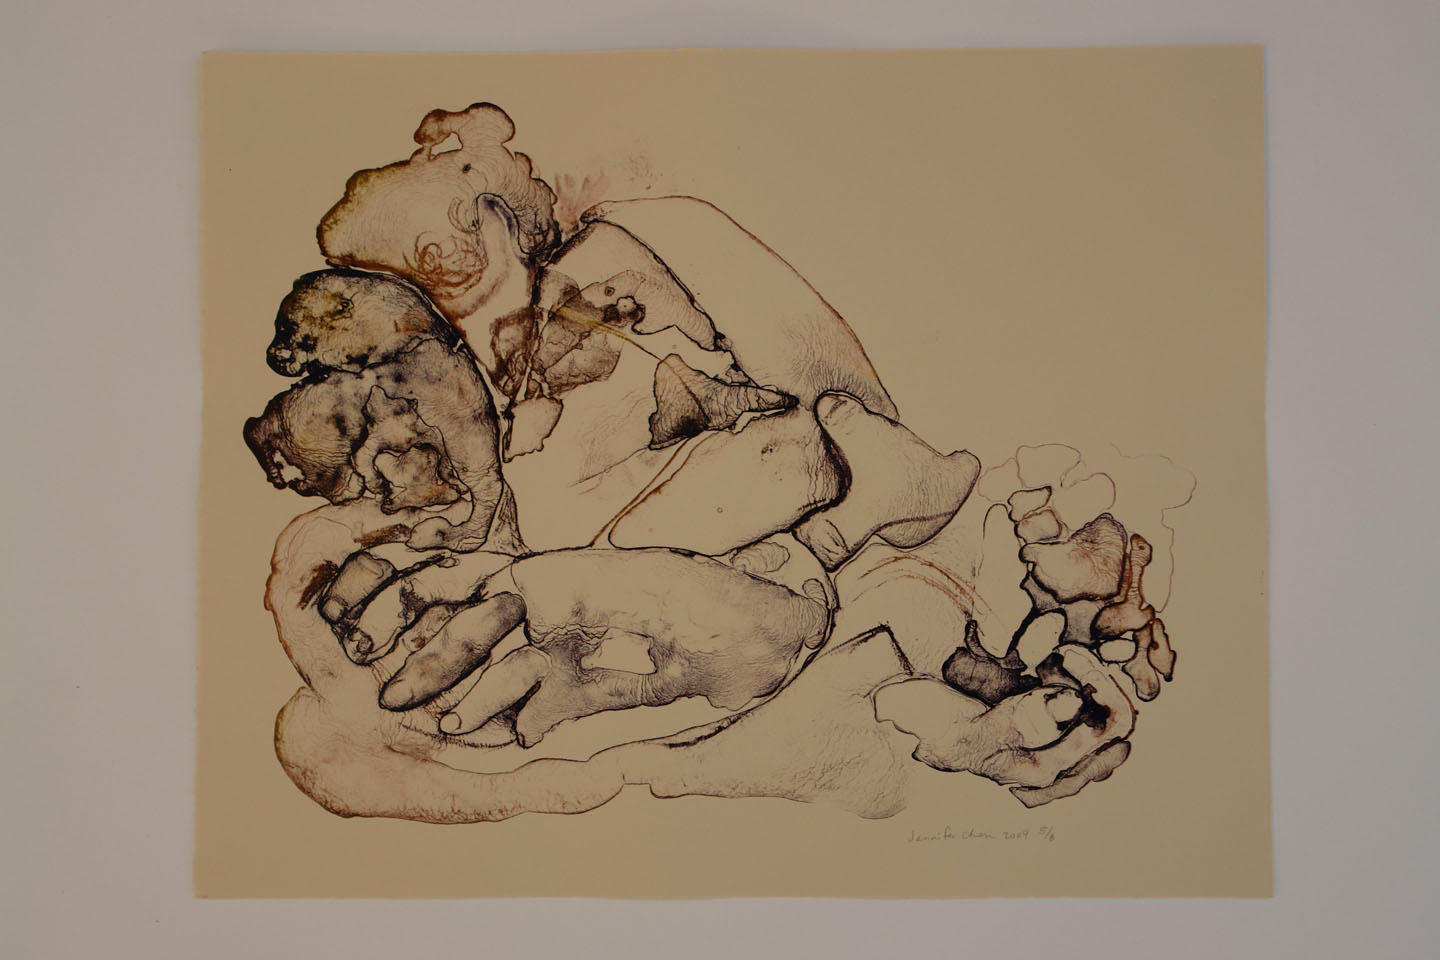 Untitled;2009    Reductive Stone Lithograph,15 x 18 in